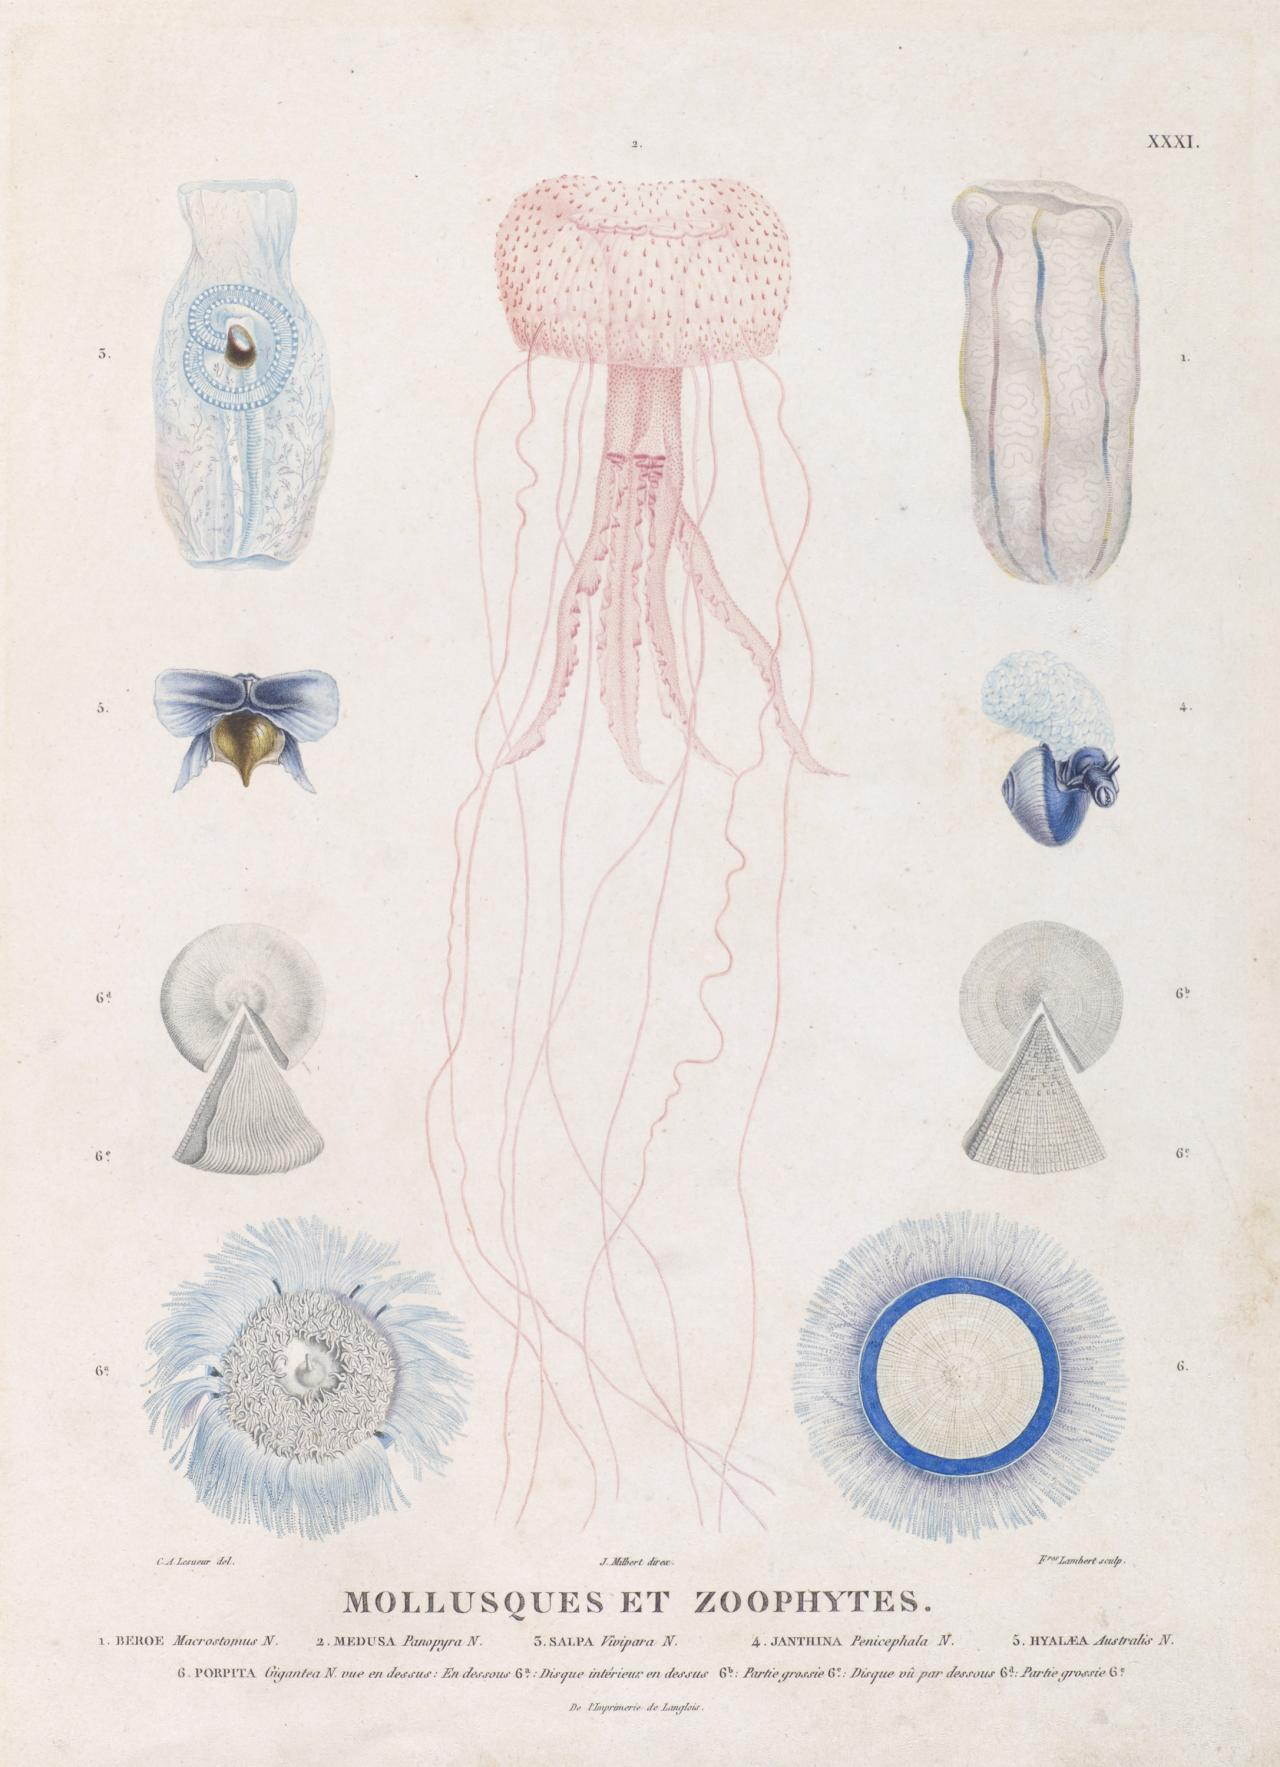 Molluscs and zoophytes